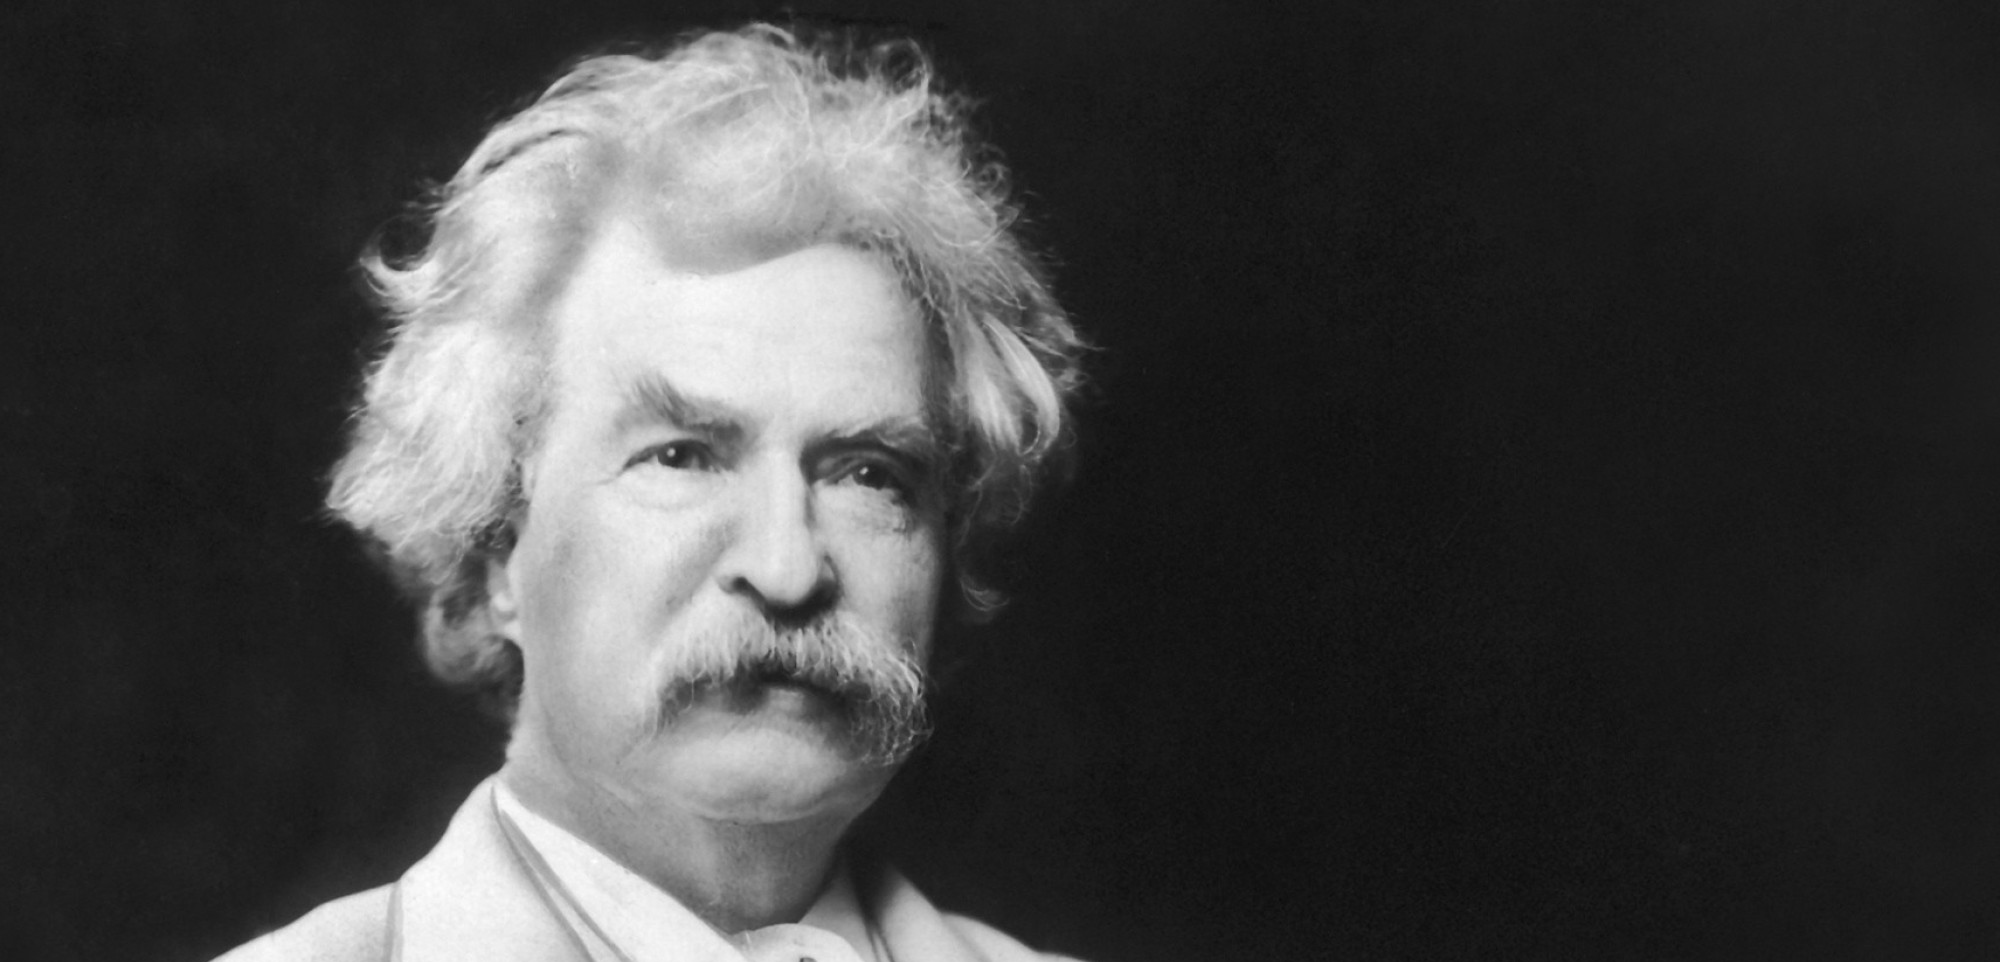 mark twain biography Mark twain was the pseudonym of samuel langhorne clemens, born in florida,  missouri on nov 30, 1835, died april 21, 1910, who achieved worldwide fame.